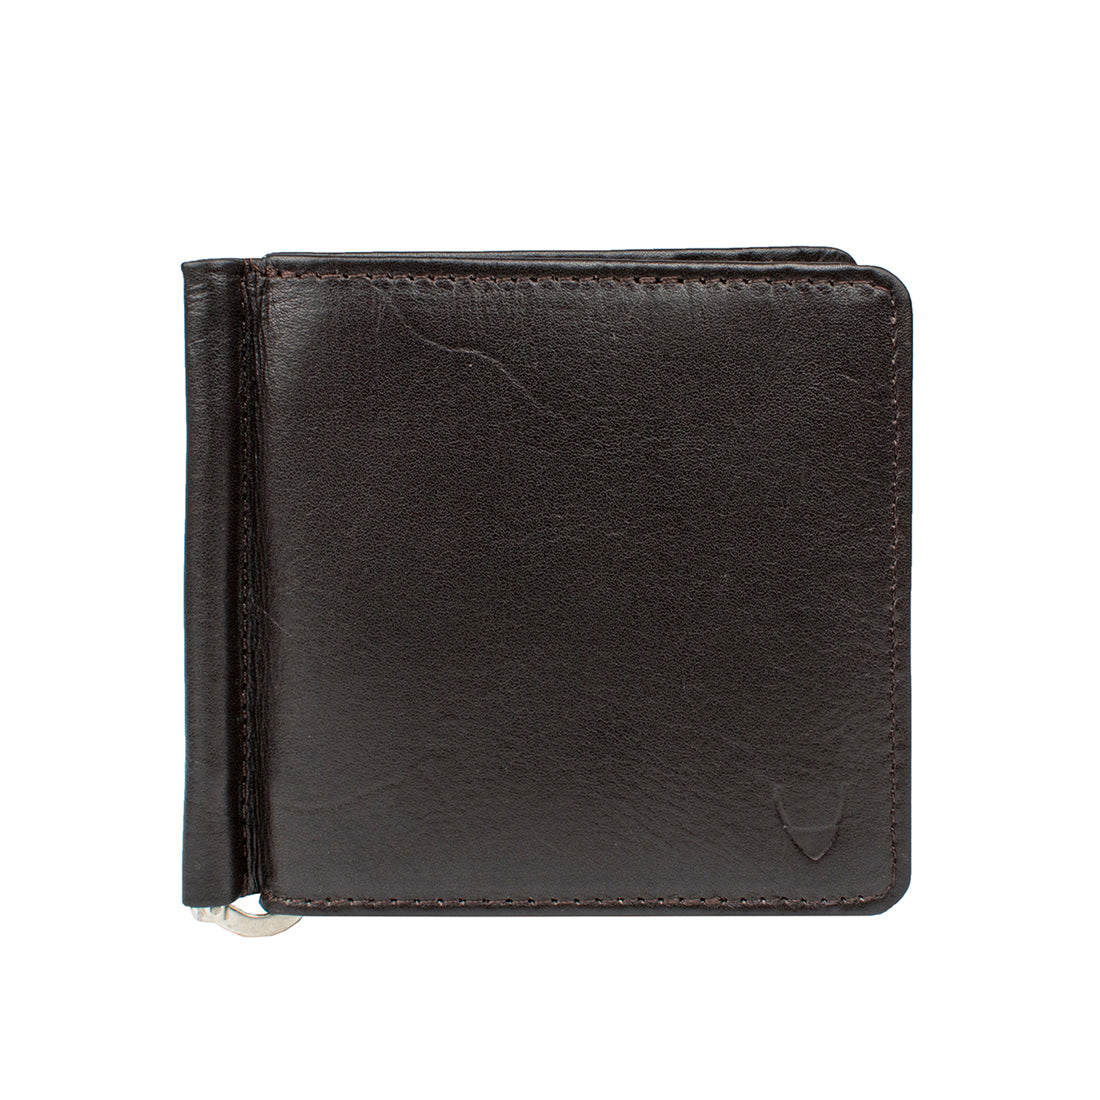 283- MONEY CLIP WALLET